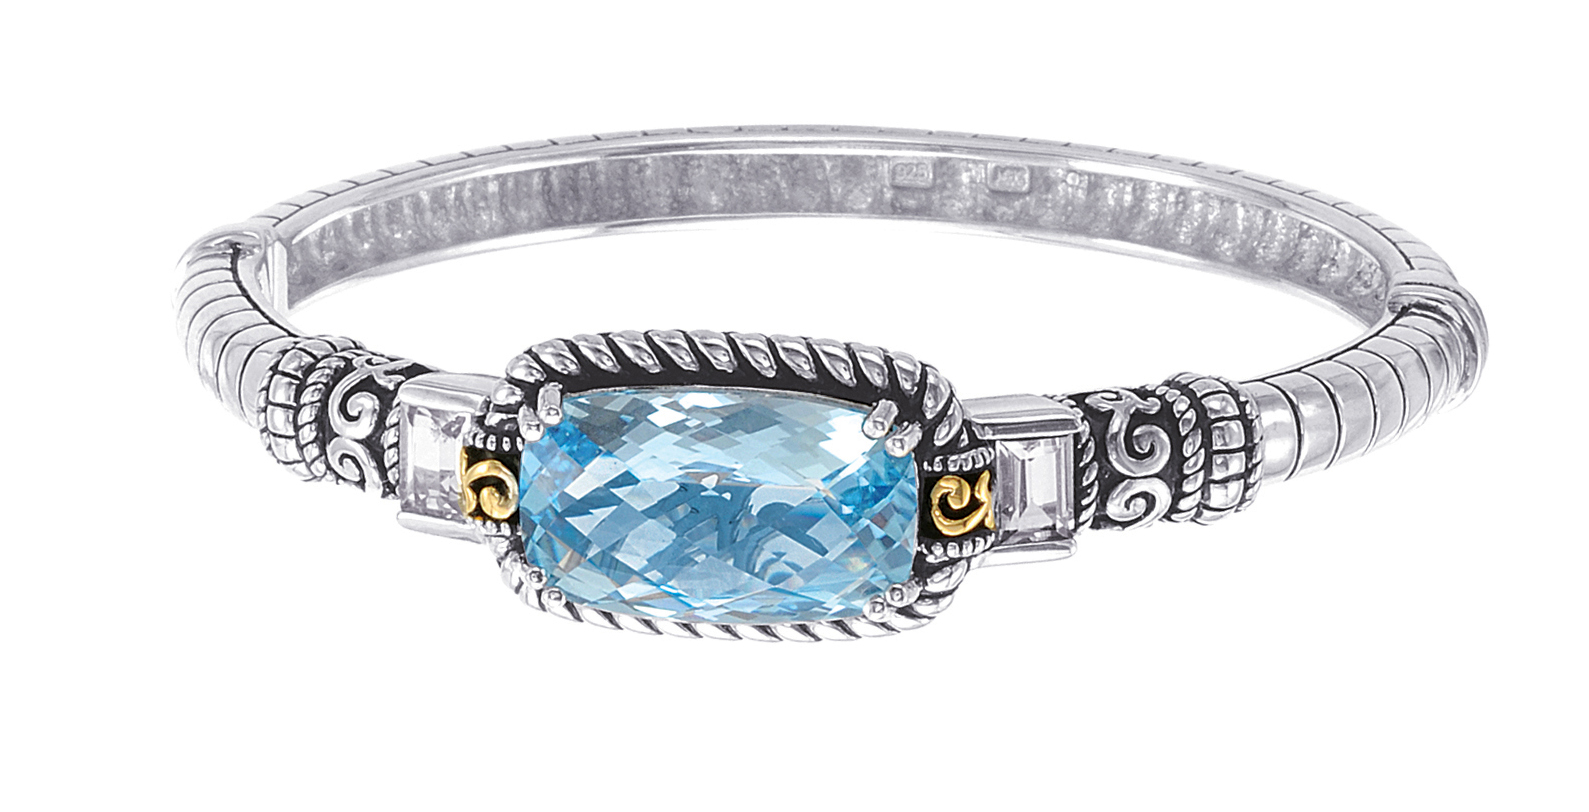 Alesandro Menegati 14K Accented Sterling Silver Bangle with Blue and White Topaz. Price: $627.00